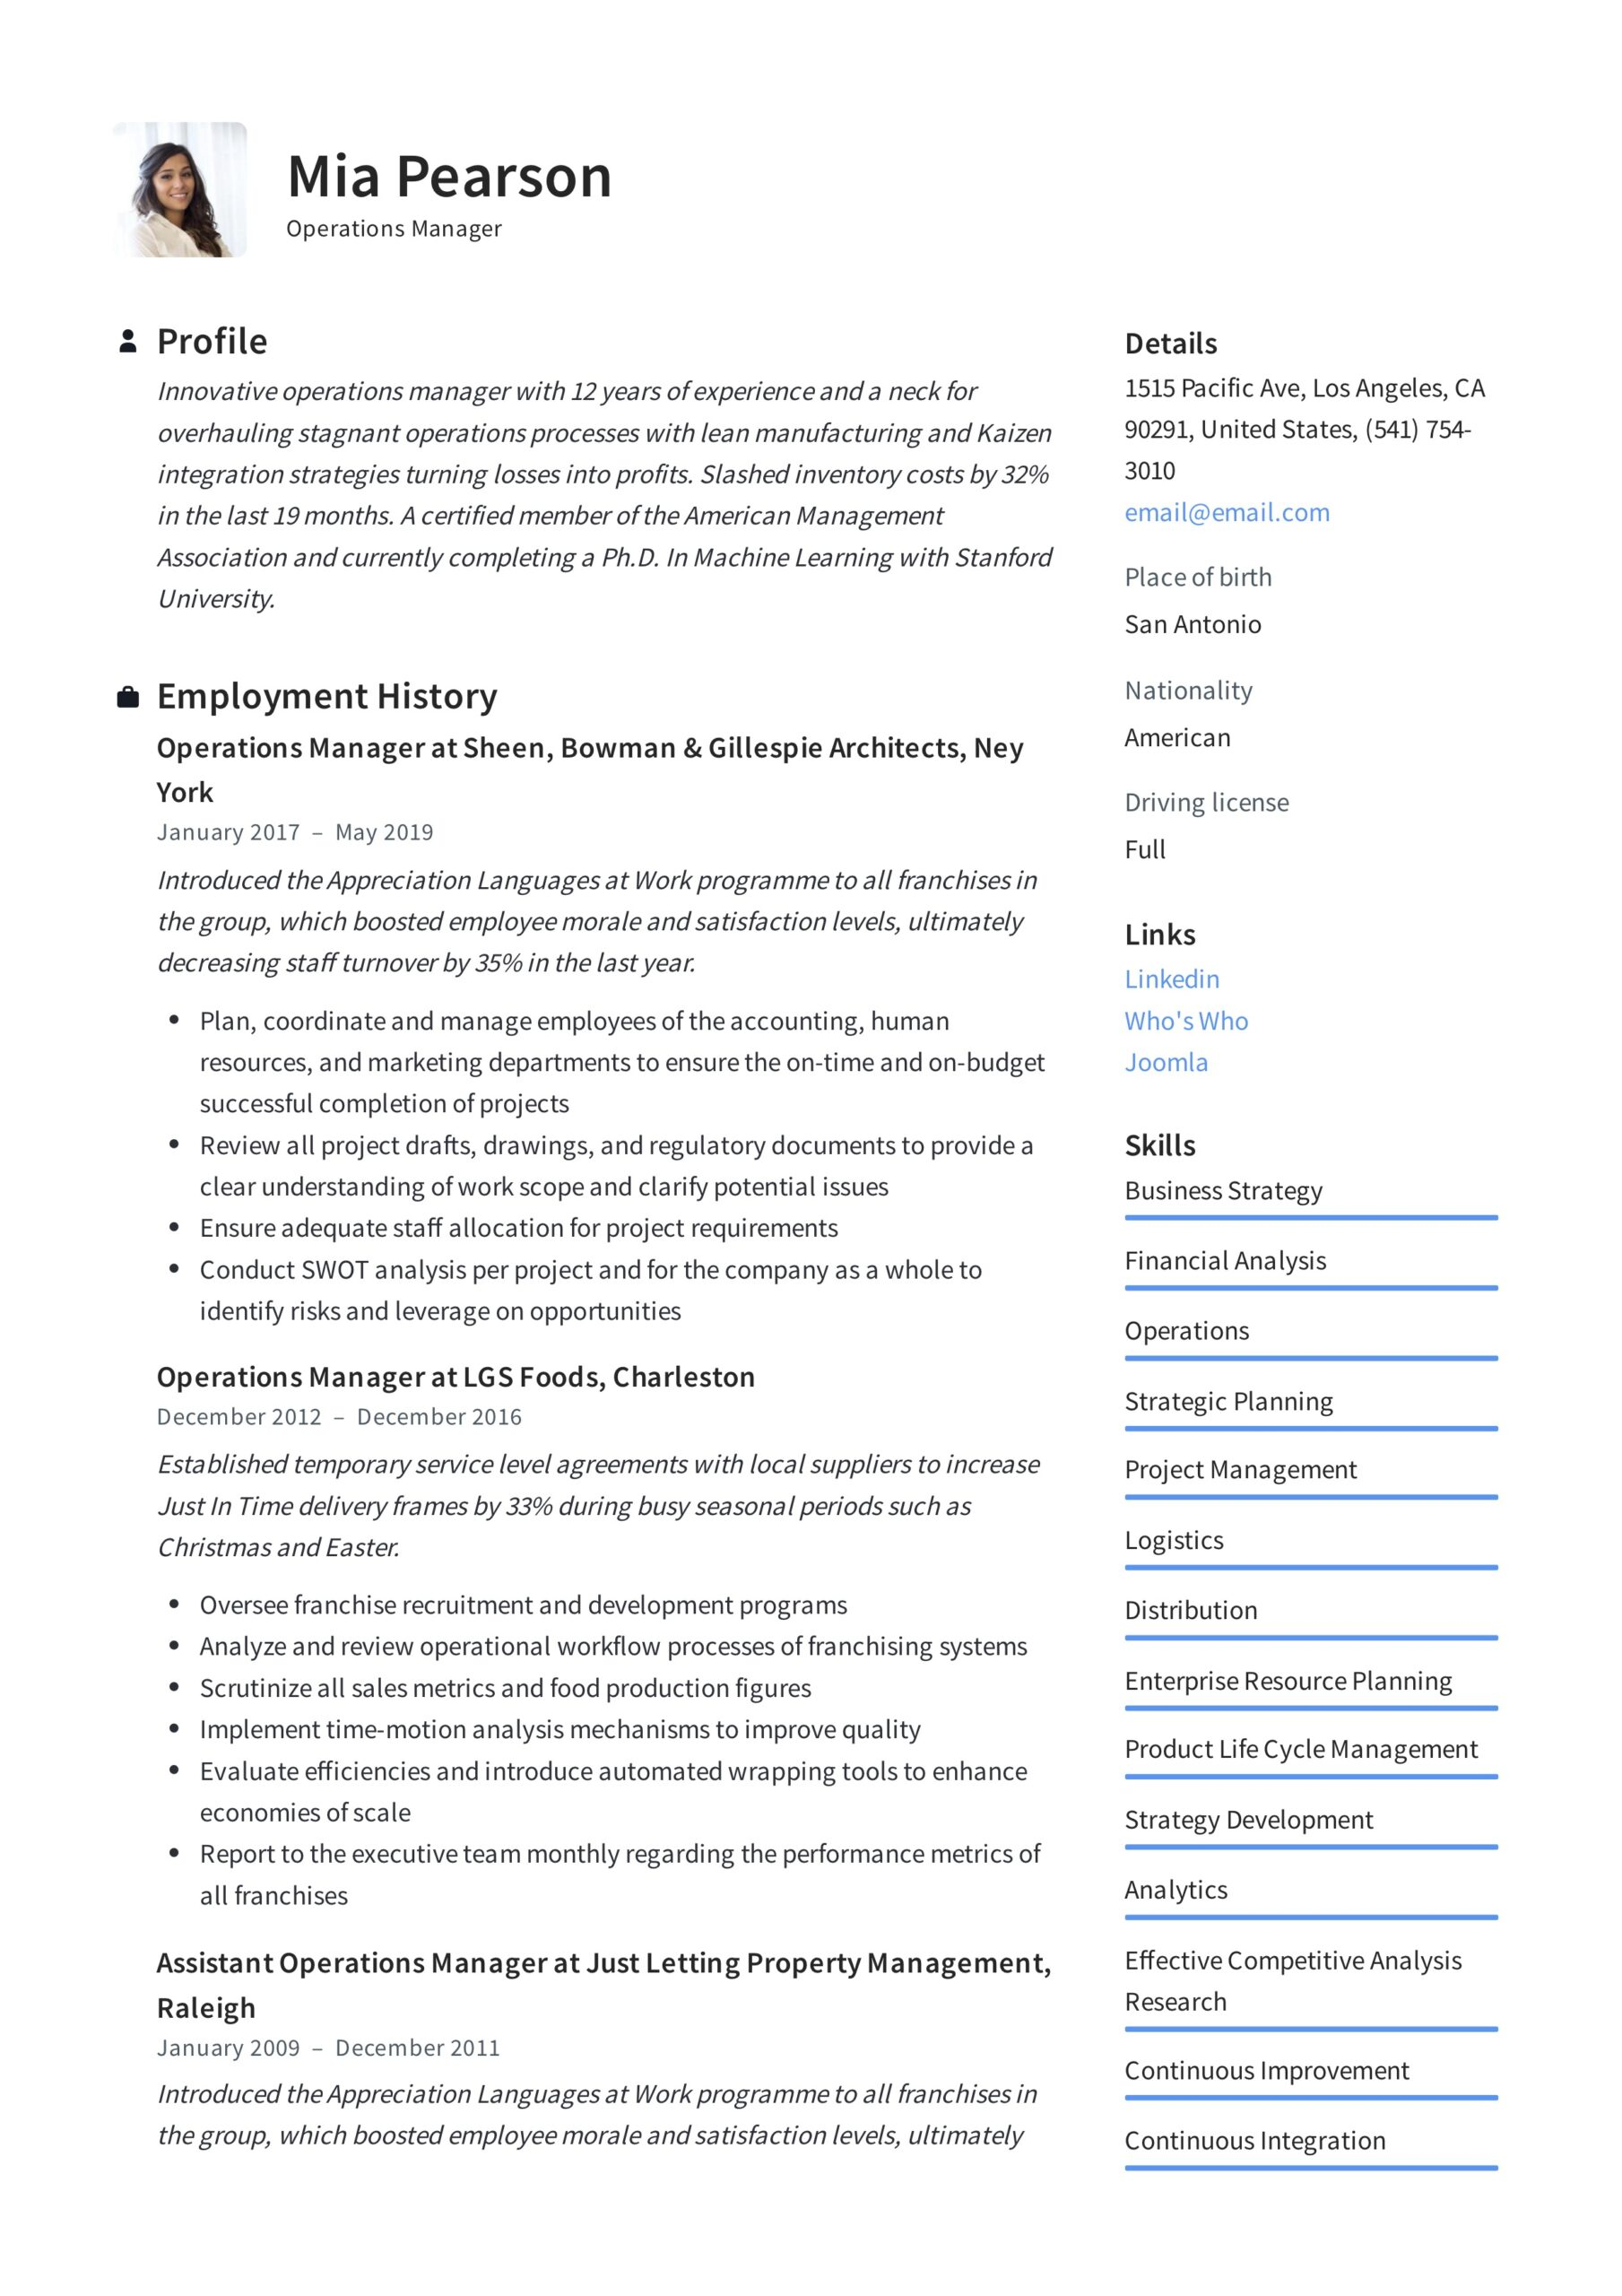 operations manager resume writing guide examples pdf example pharmacy assistant on iphone Resume Operations Manager Resume Examples